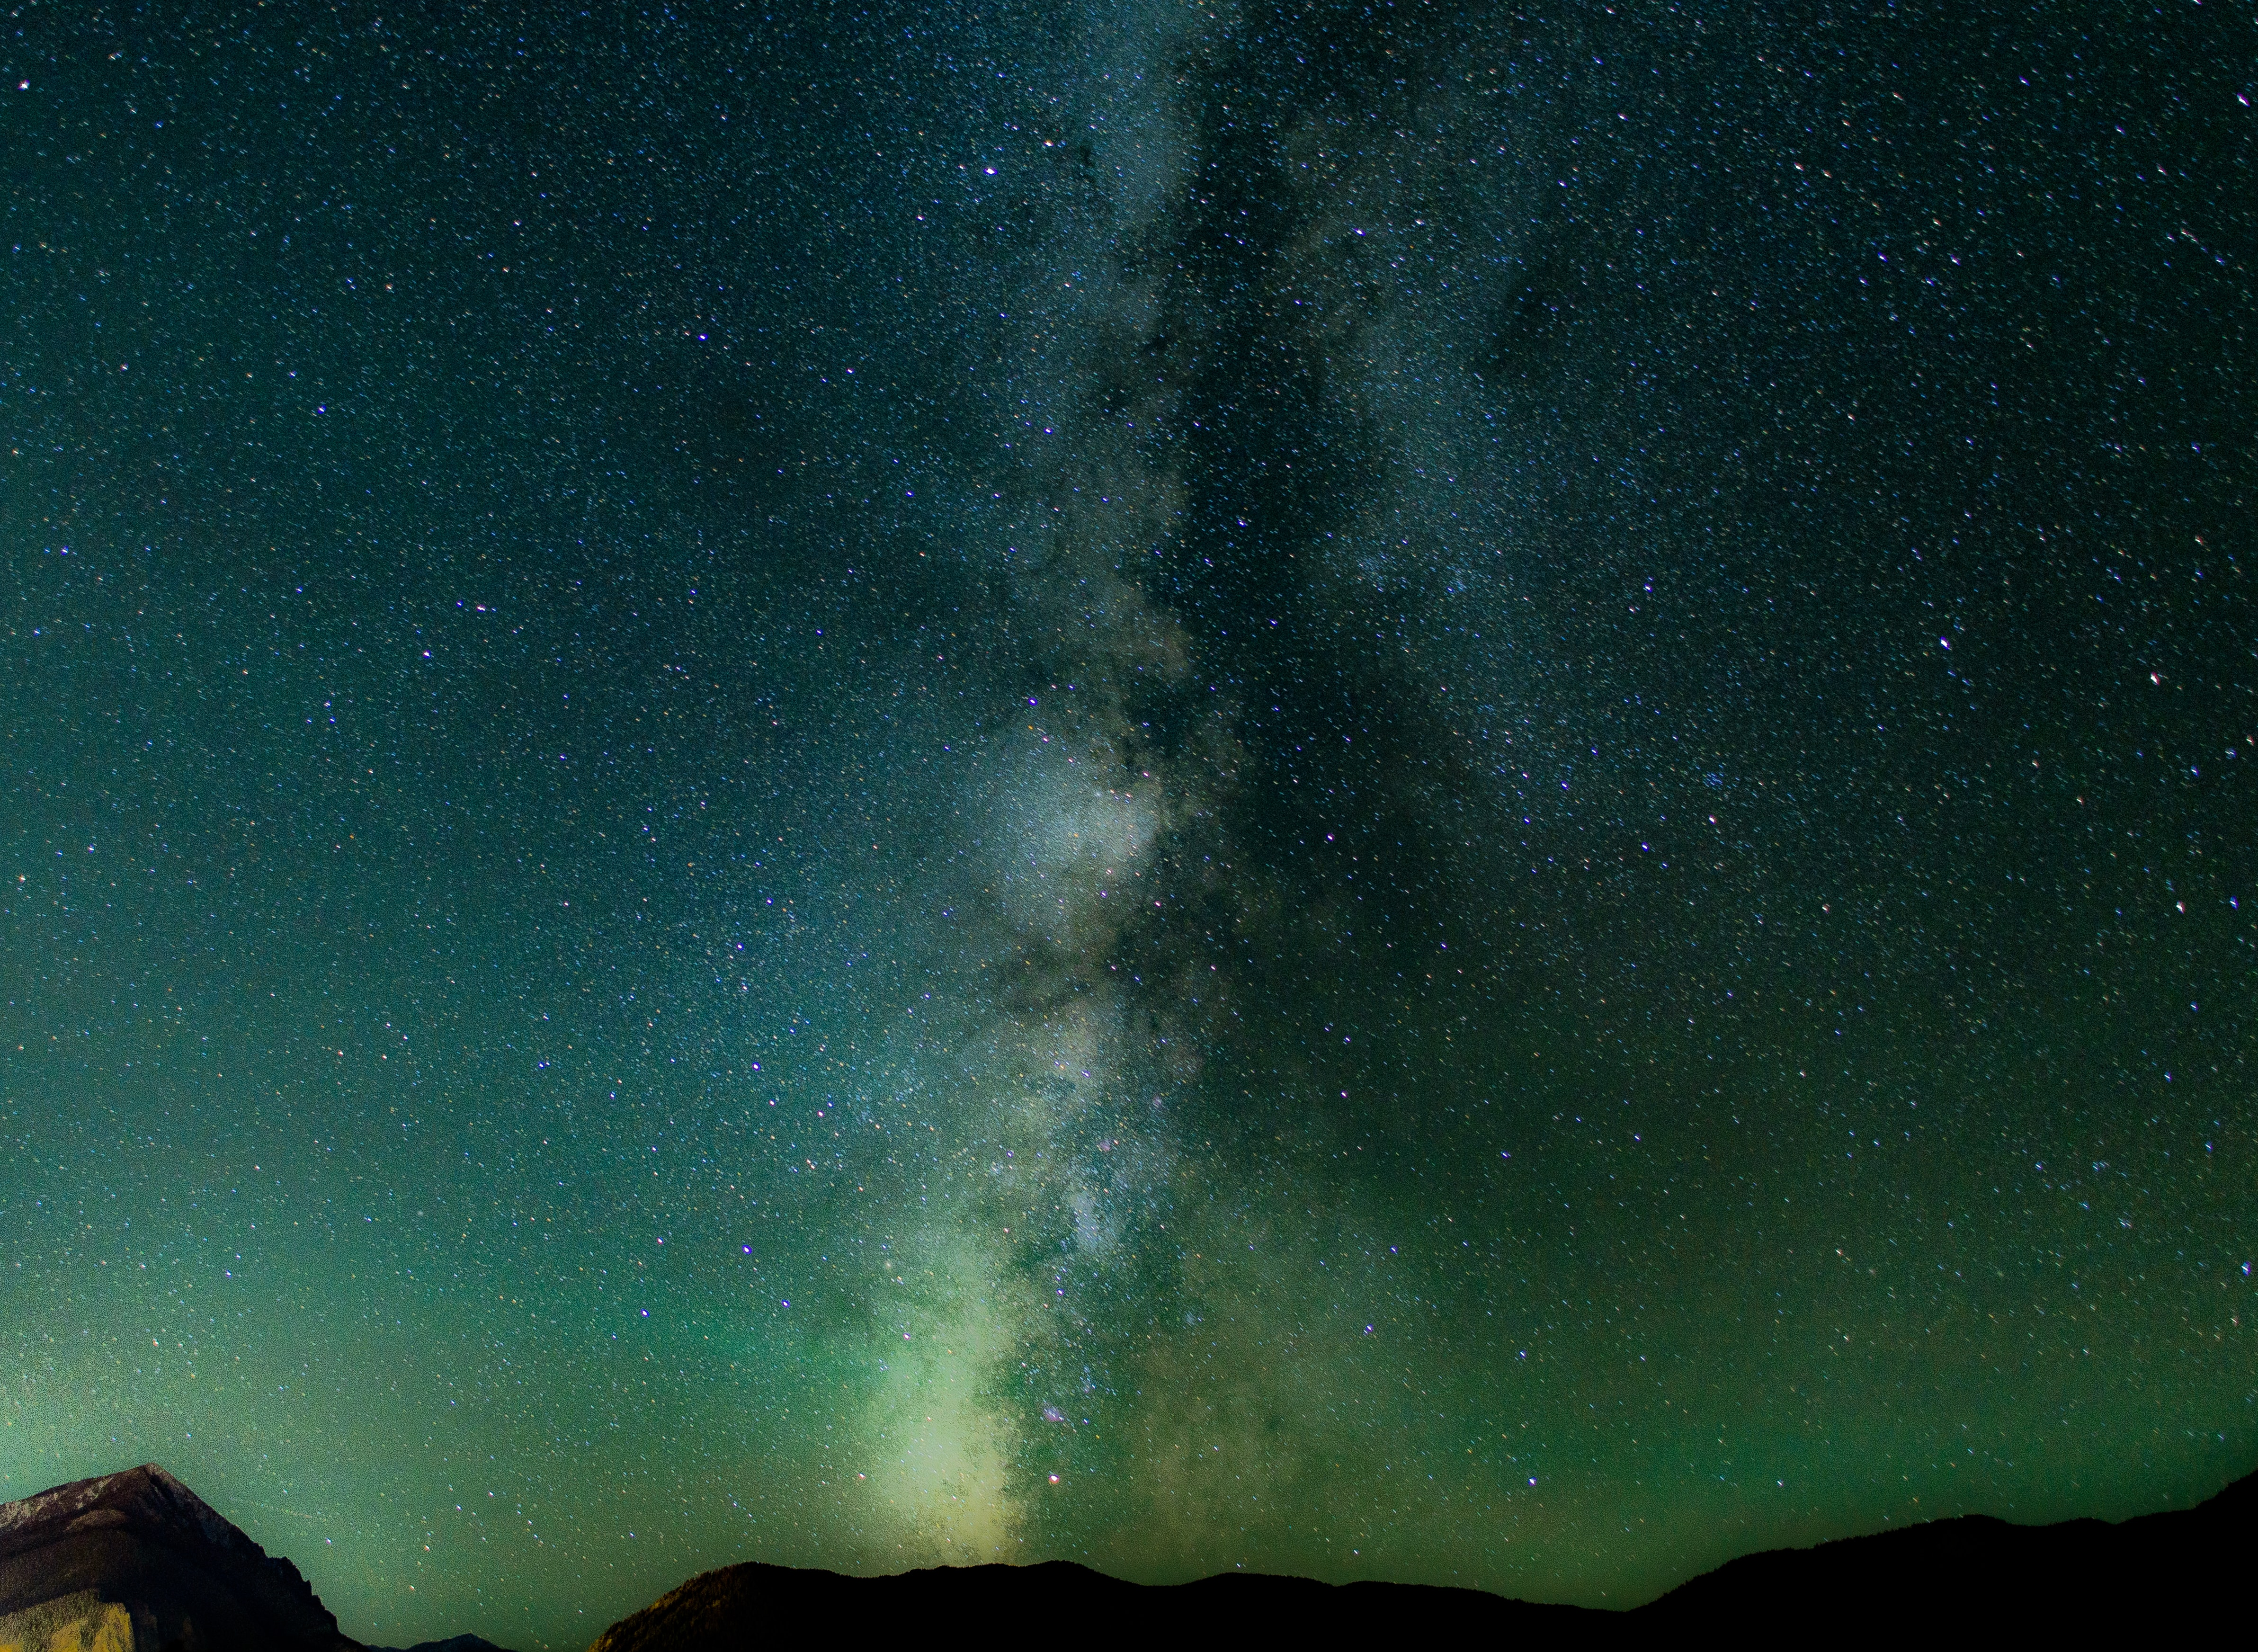 The Milky Way rises above the hills in Silverthorne